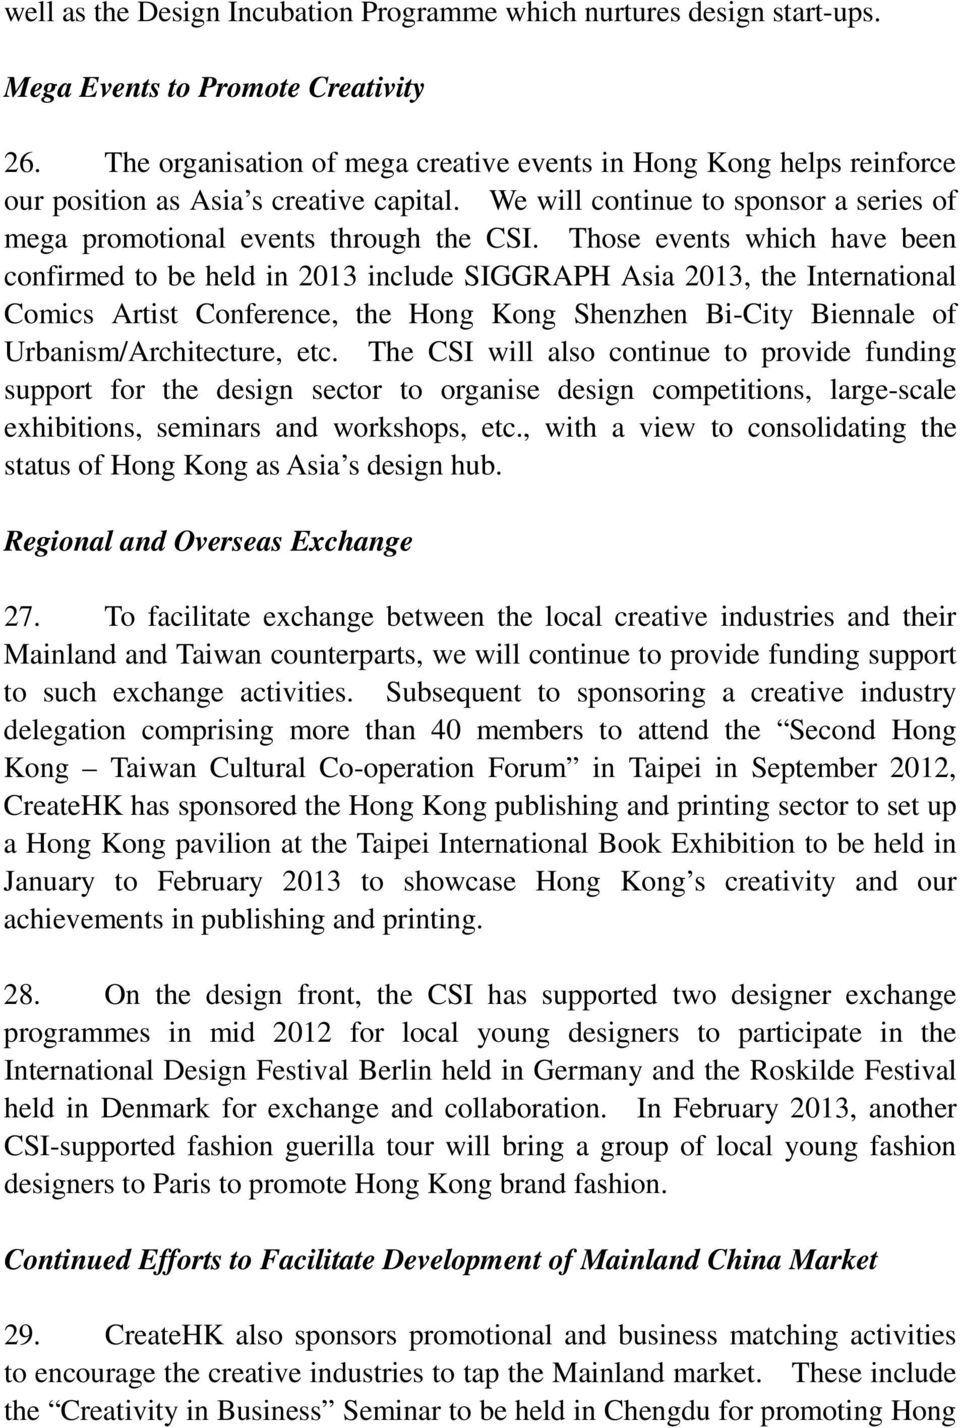 Those events which have been confirmed to be held in 2013 include SIGGRAPH Asia 2013, the International Comics Artist Conference, the Hong Kong Shenzhen Bi-City Biennale of Urbanism/Architecture, etc.